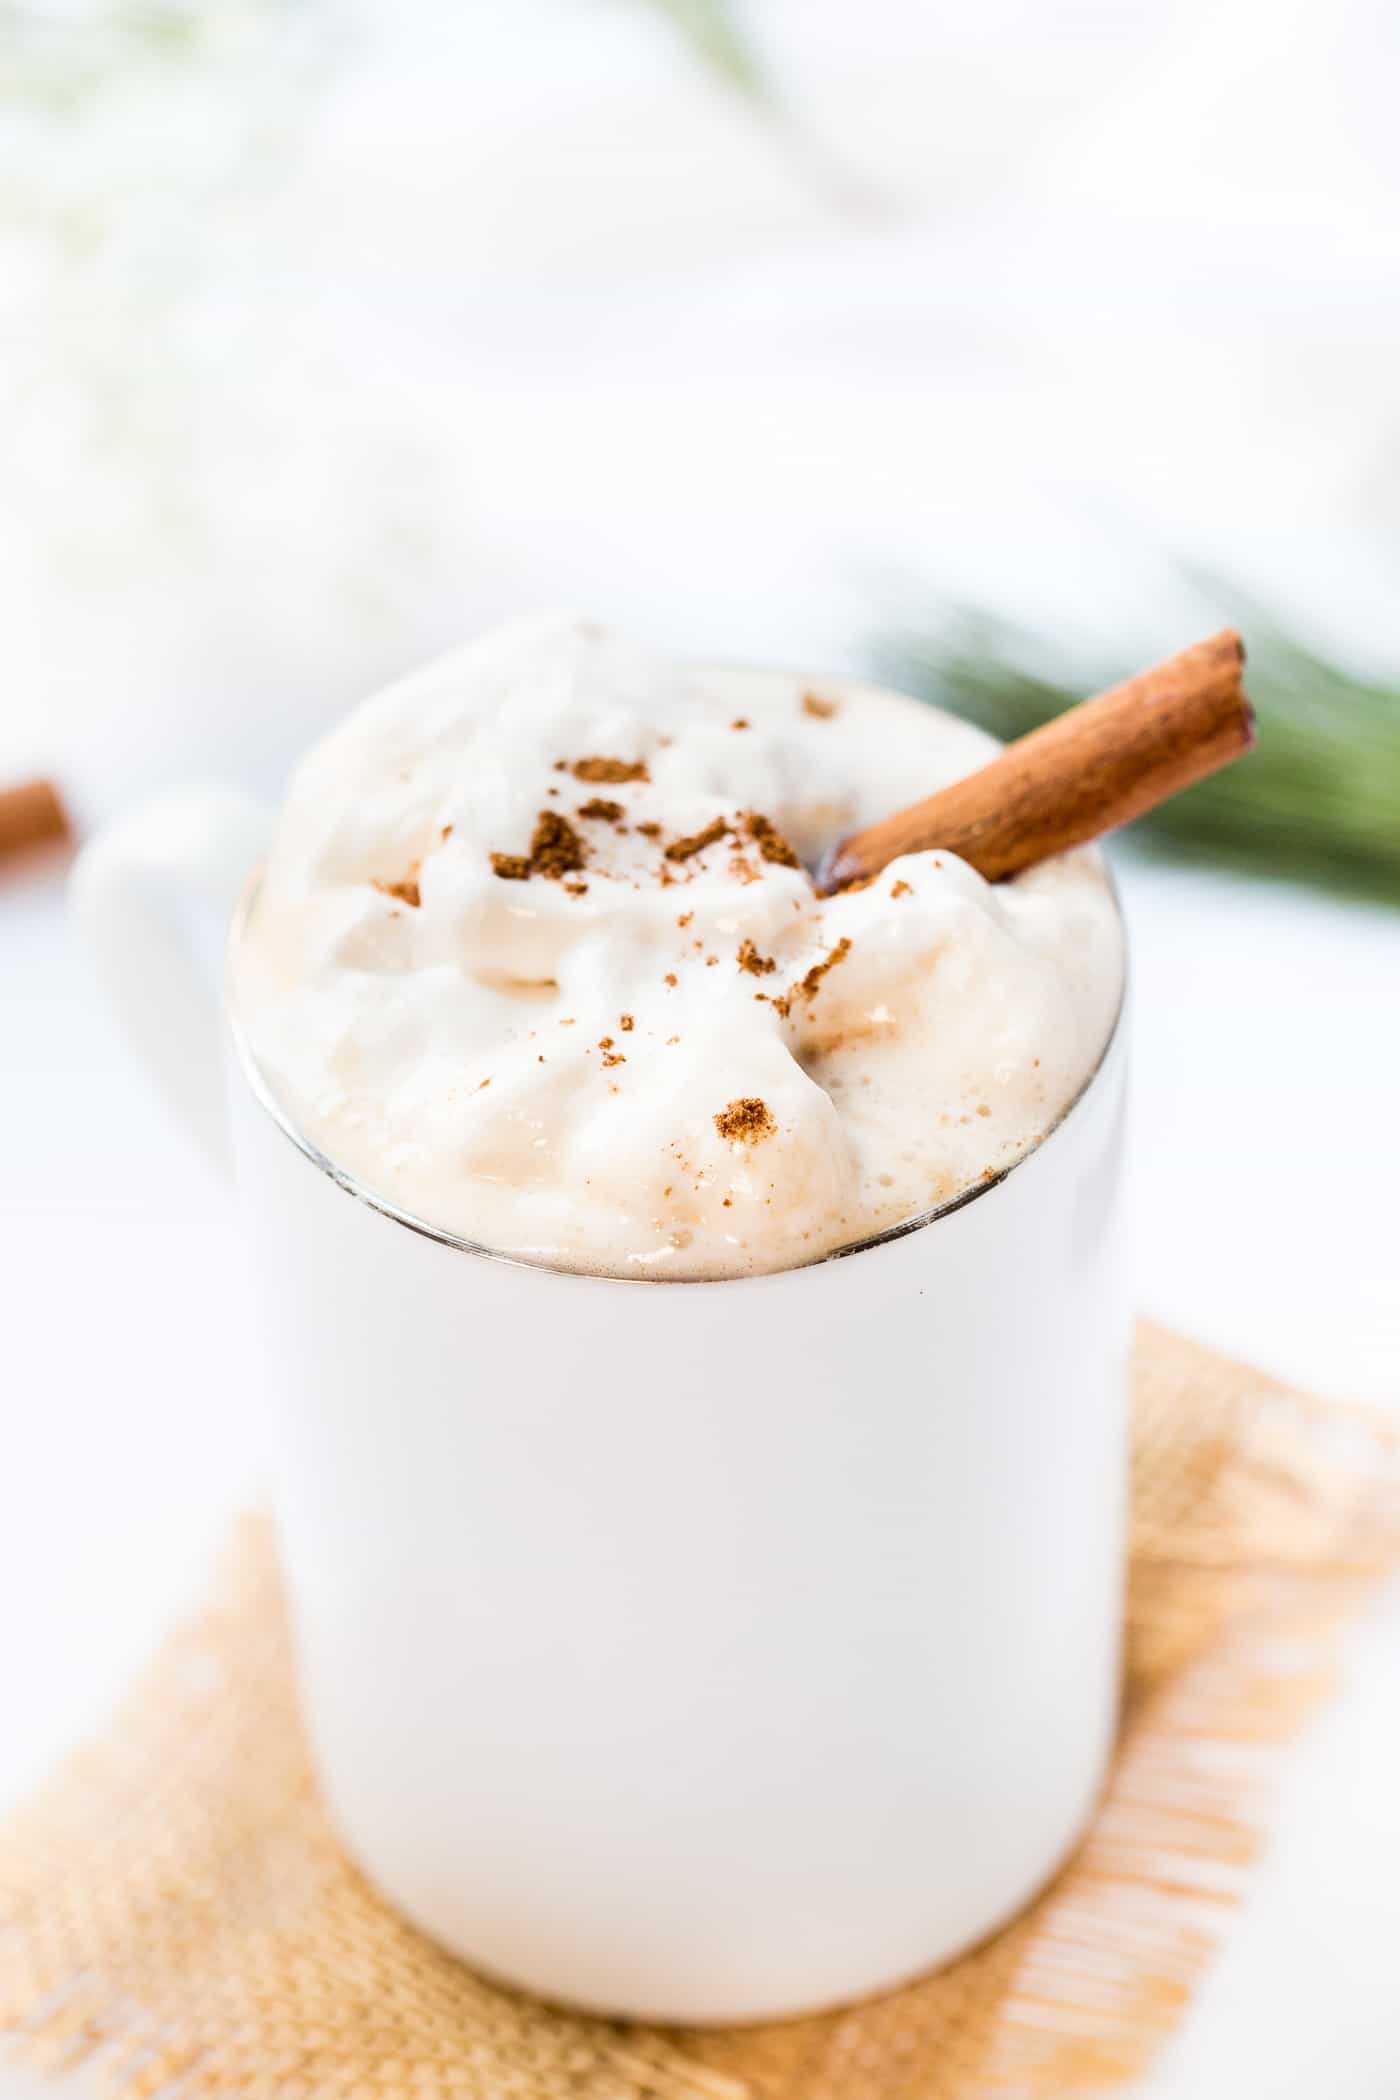 This SIMPLE Vegan Chai Latte is made with five spice powder for a flavorful twist! Topped with whipped cream and cinnamon, it's a perfect treat!